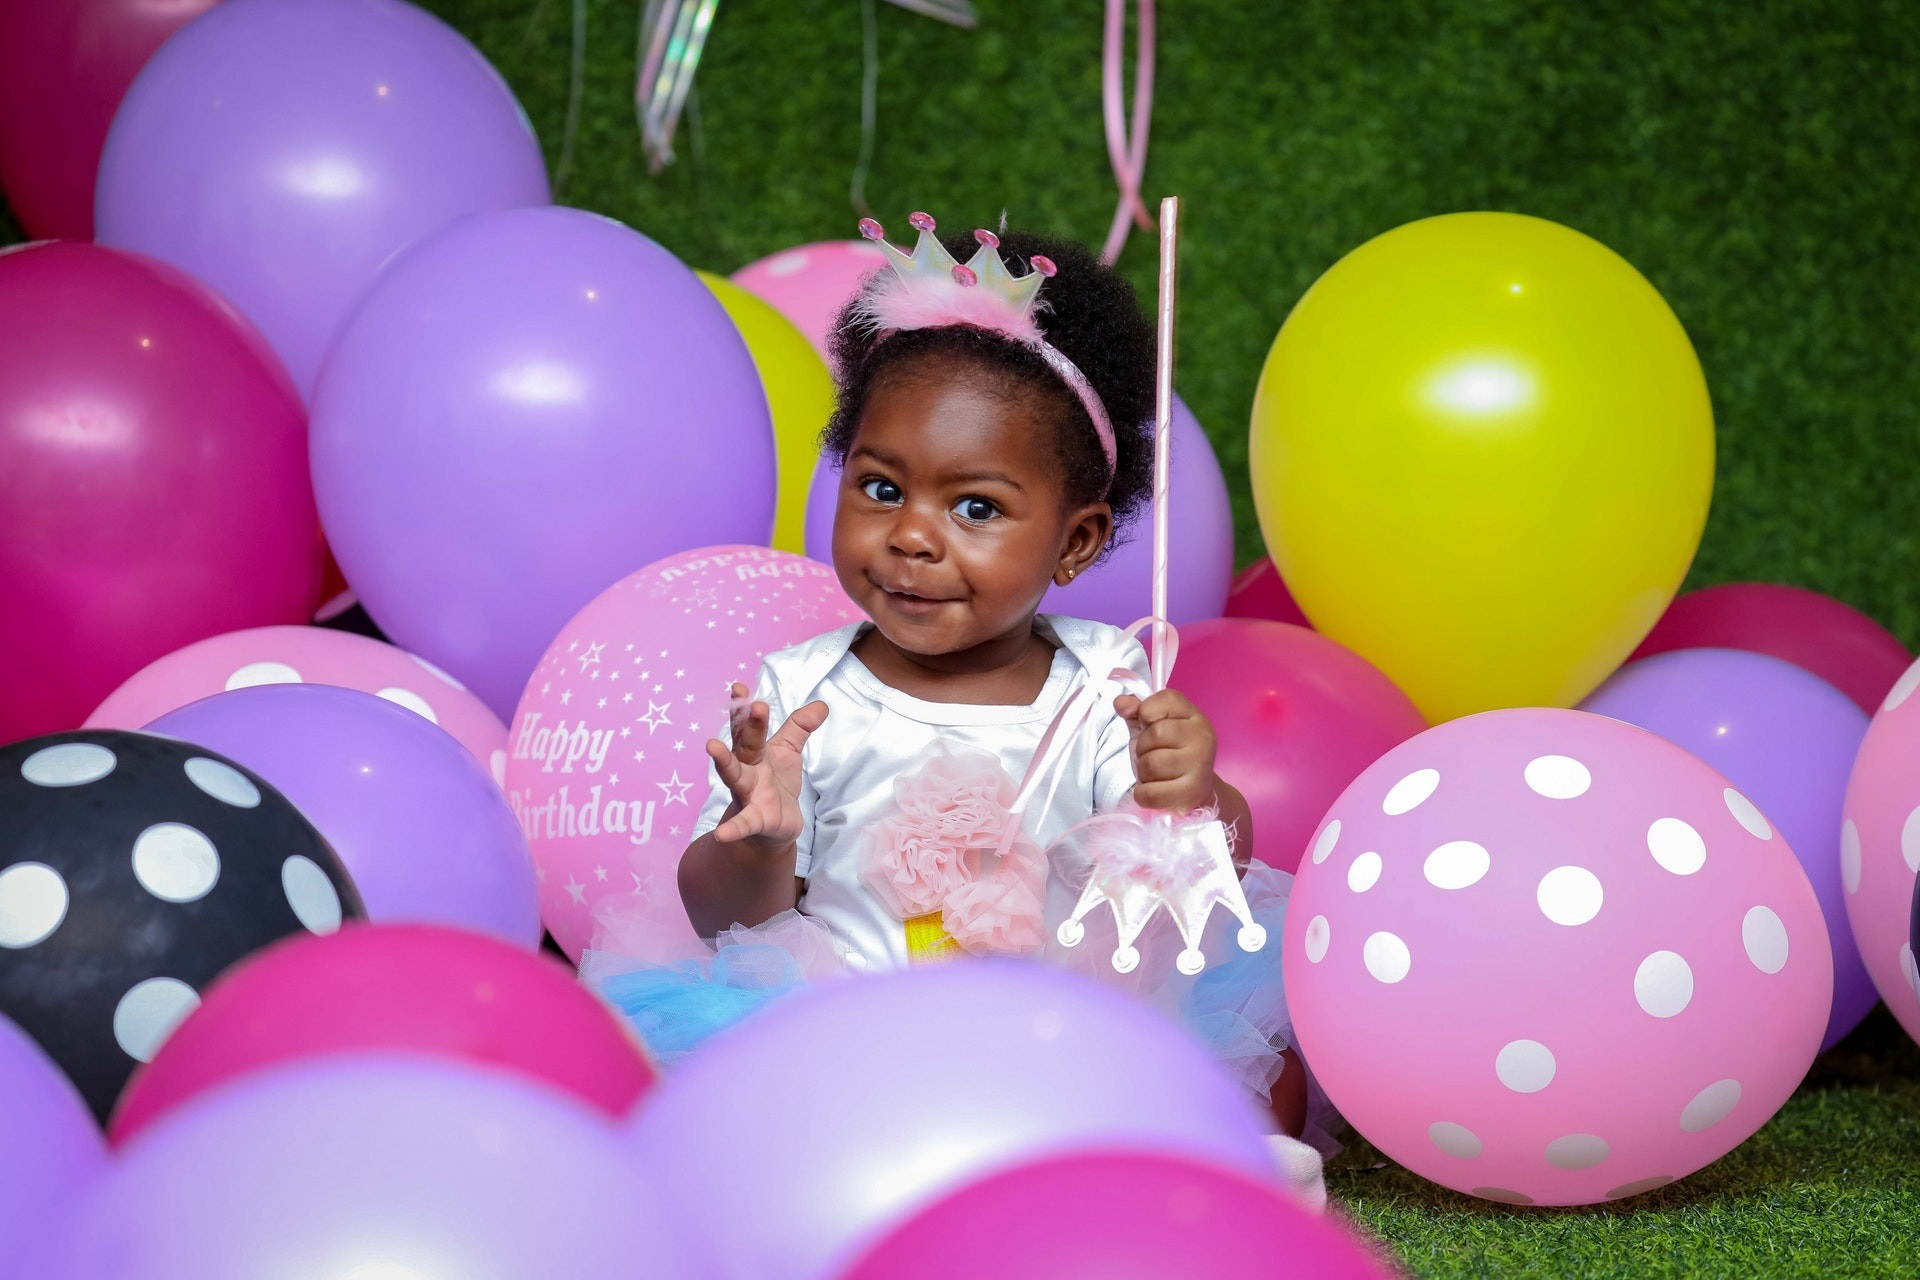 African American baby surrounded by birthday balloons